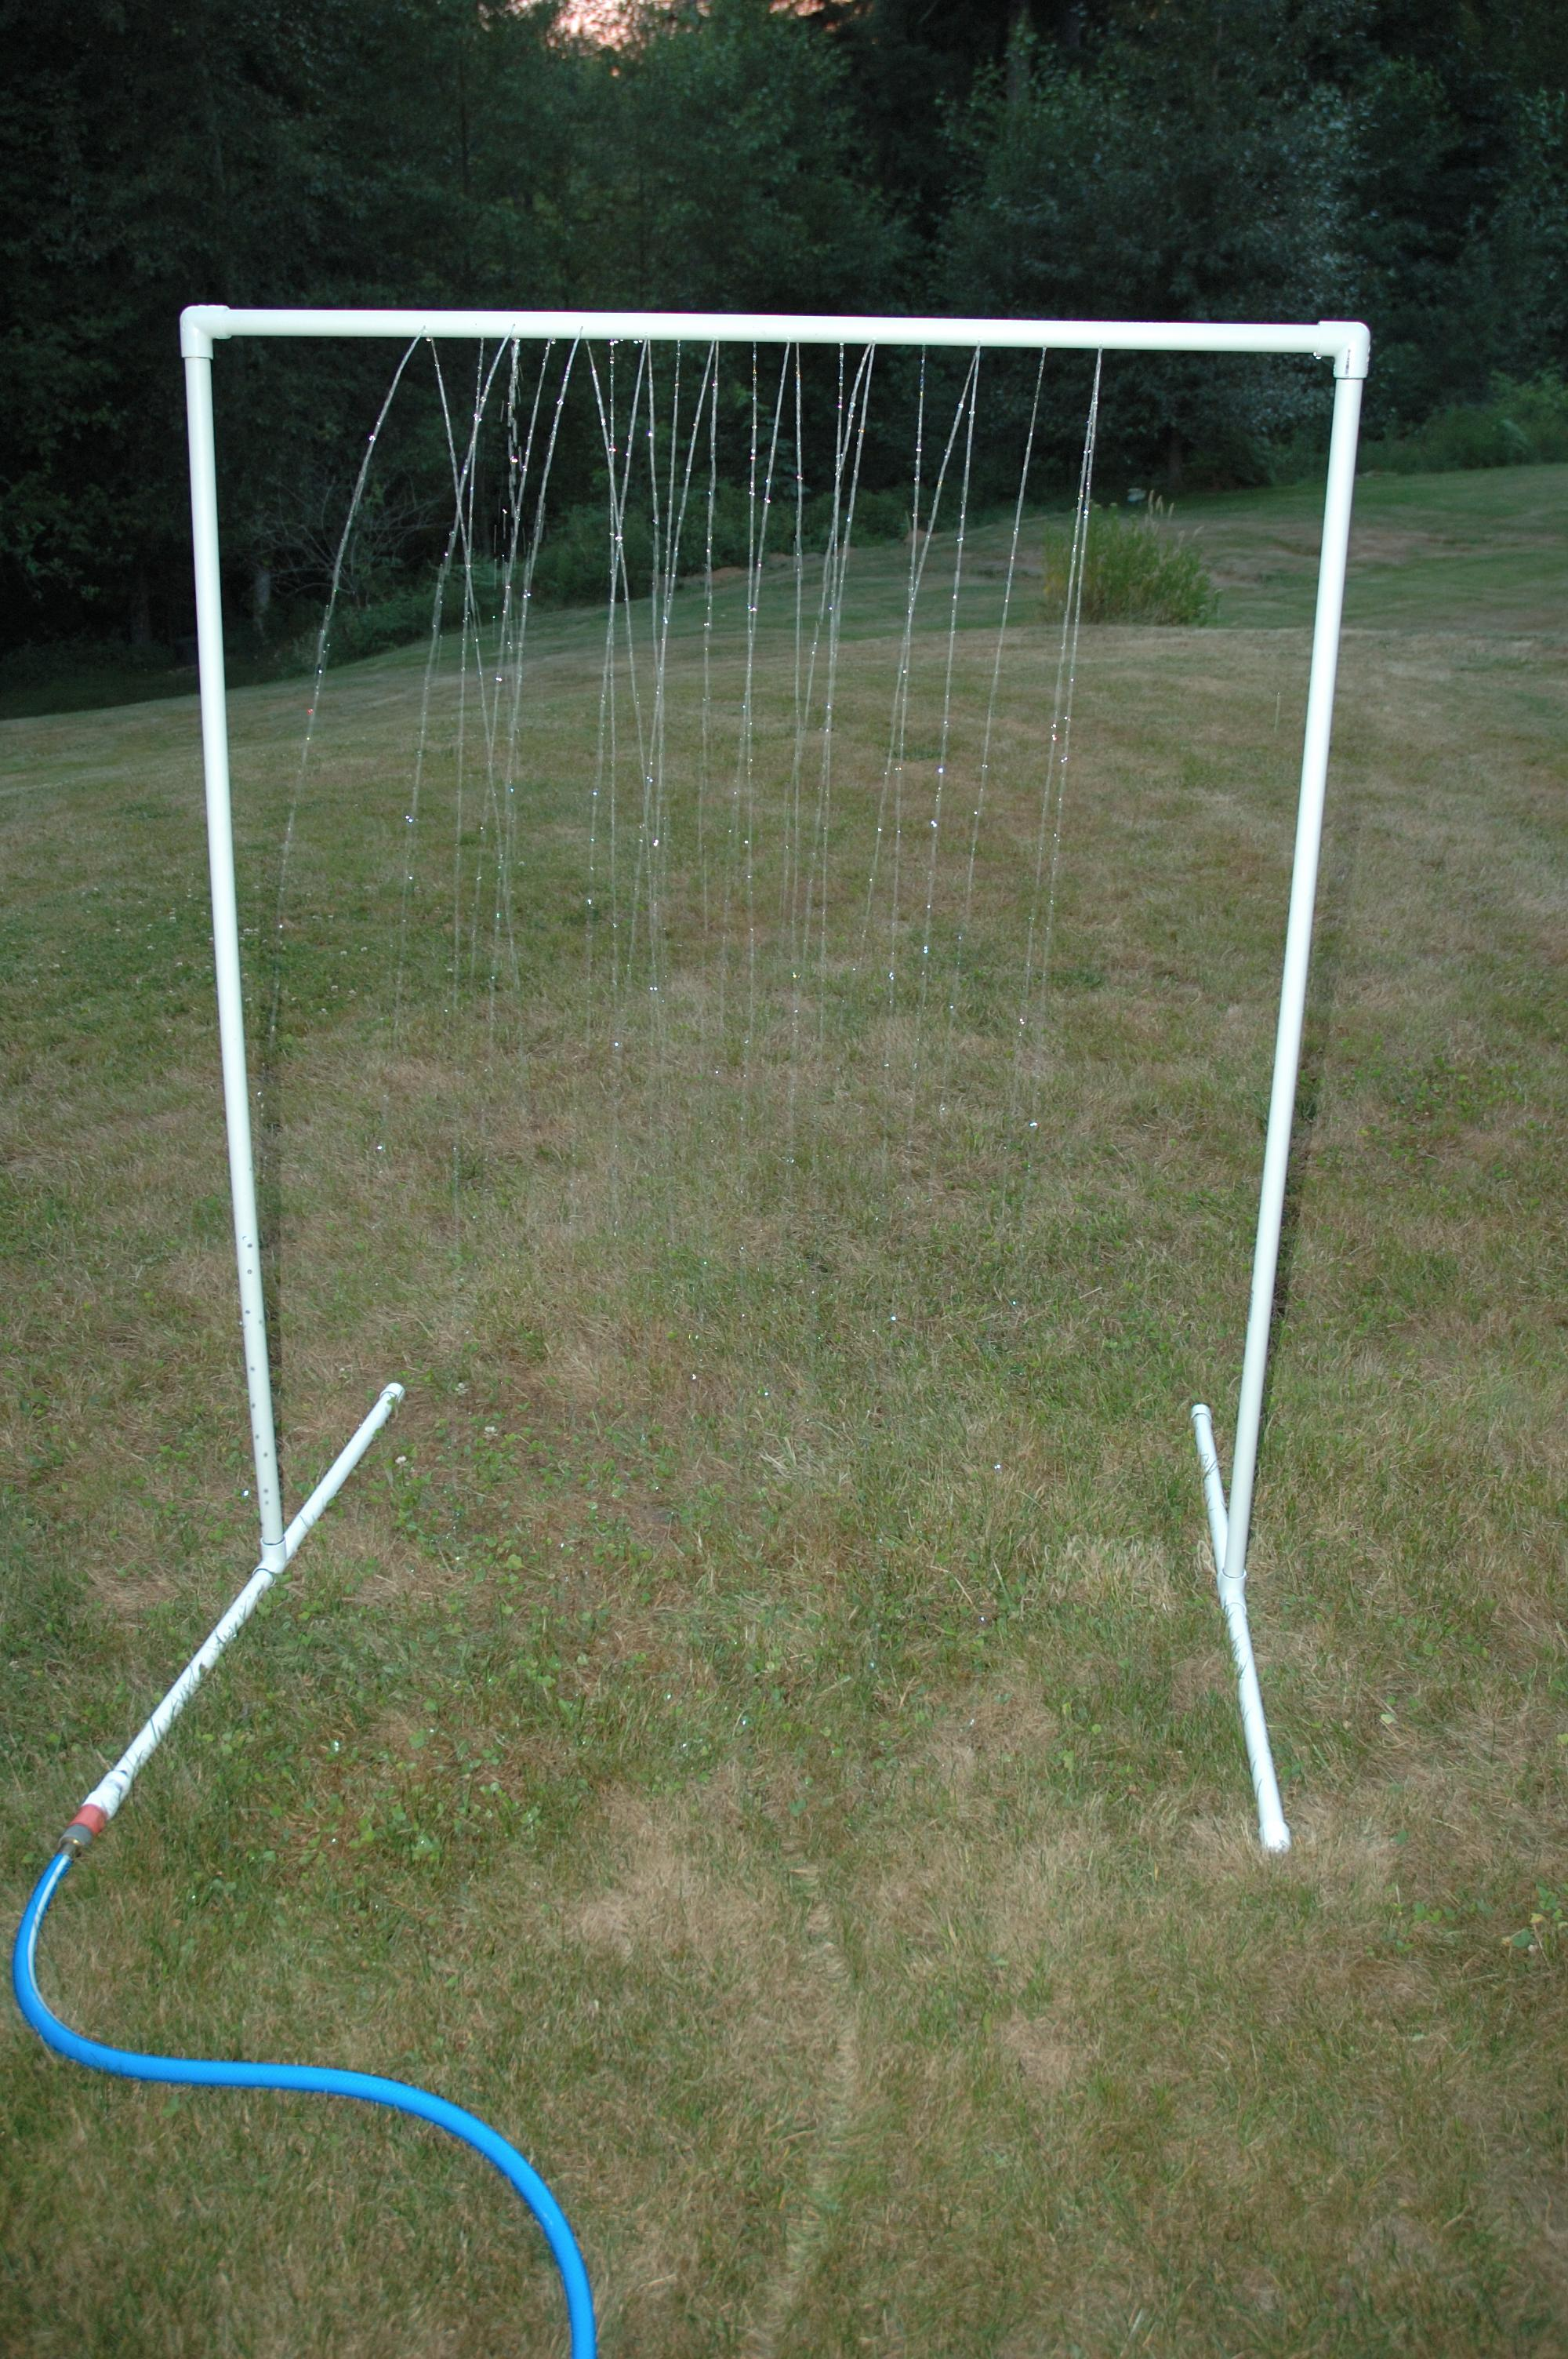 KidWash: PVC Sprinkler Water Toy